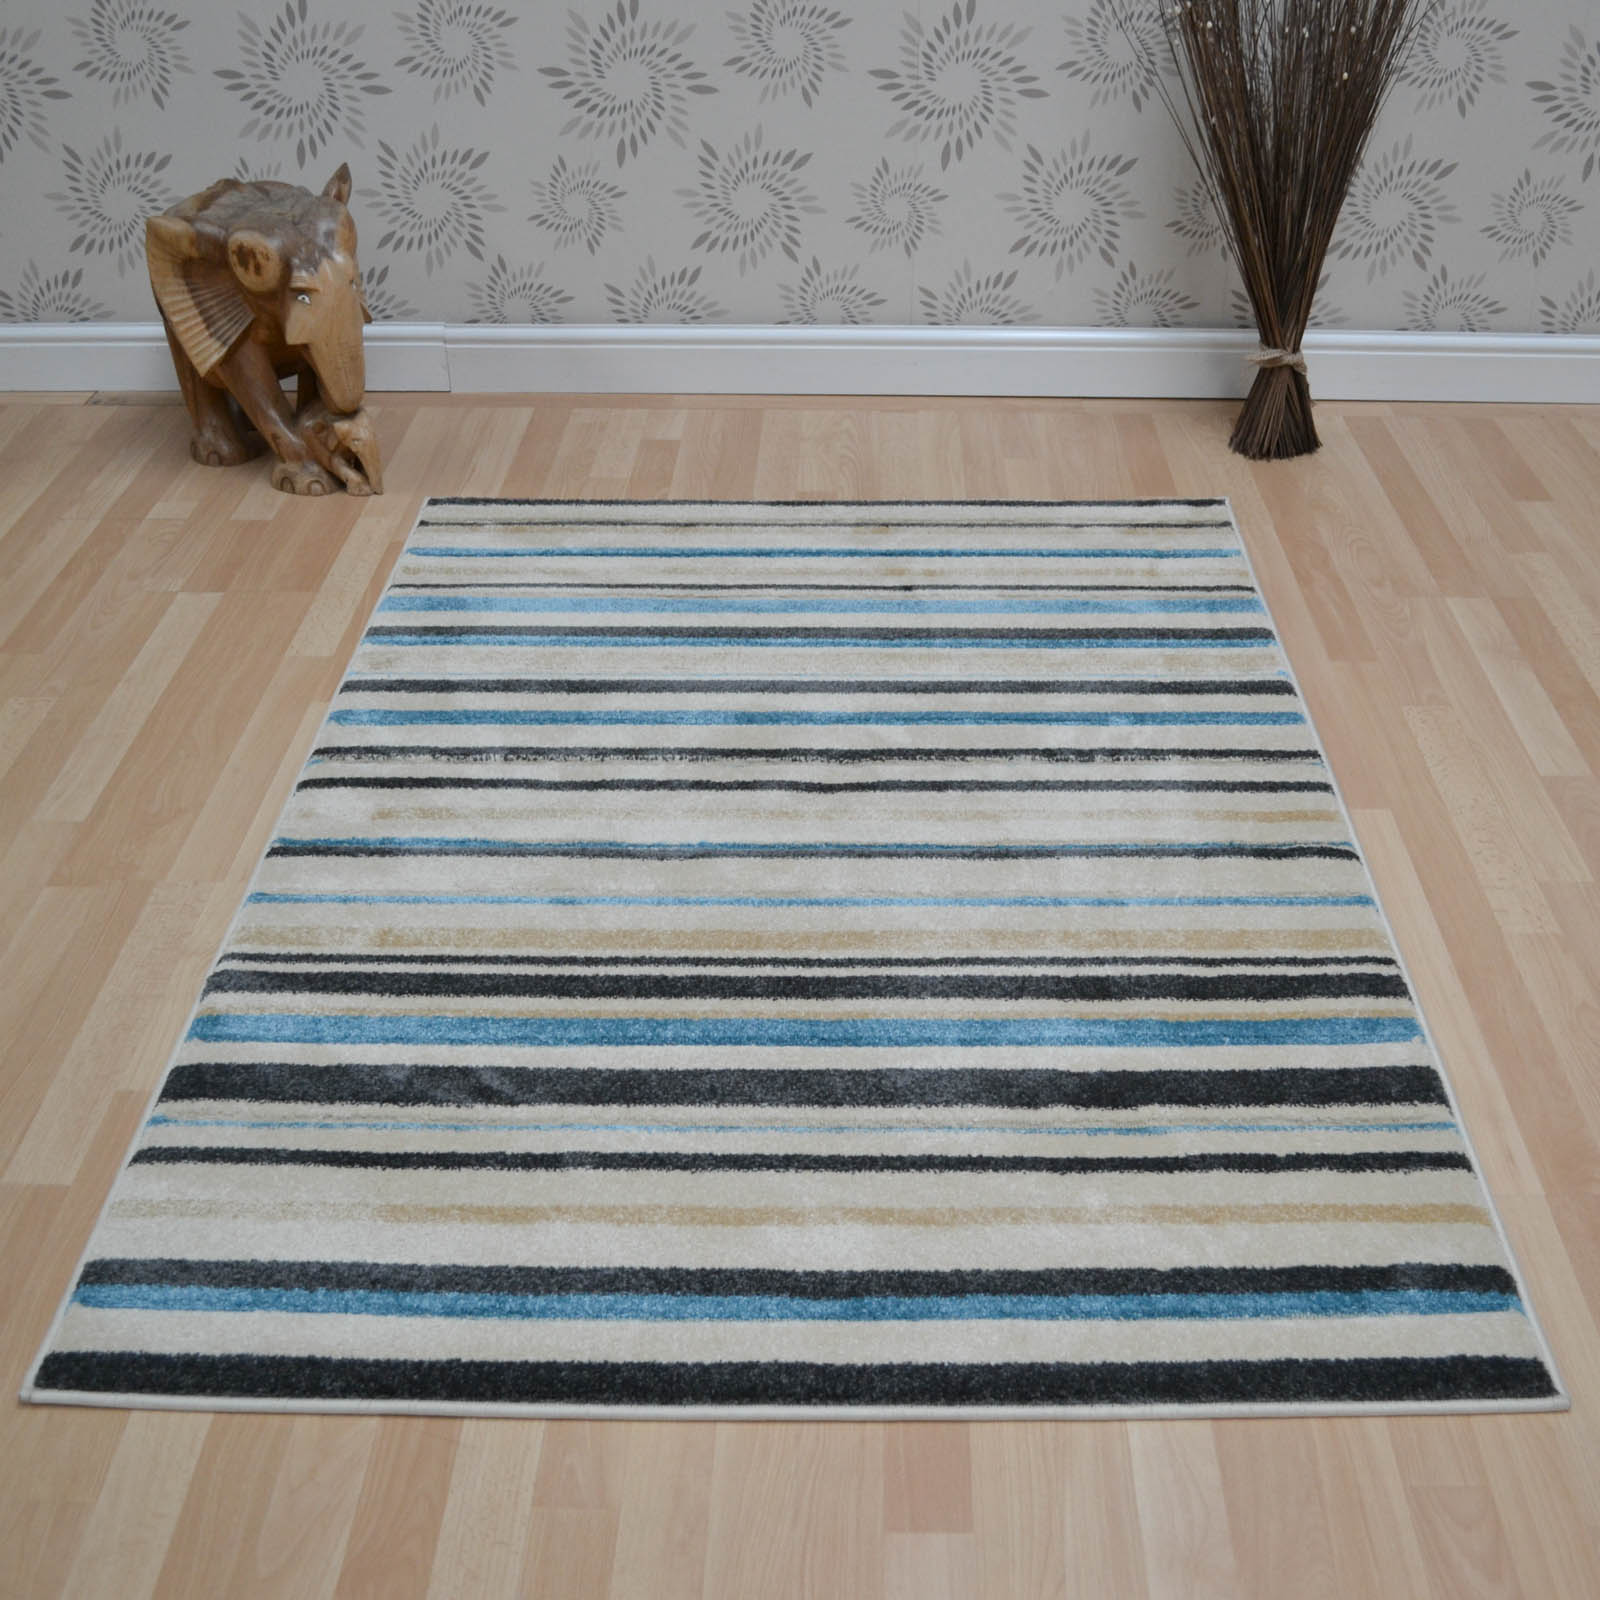 Vogue Stripes Rugs VG22 in Beige and Blue